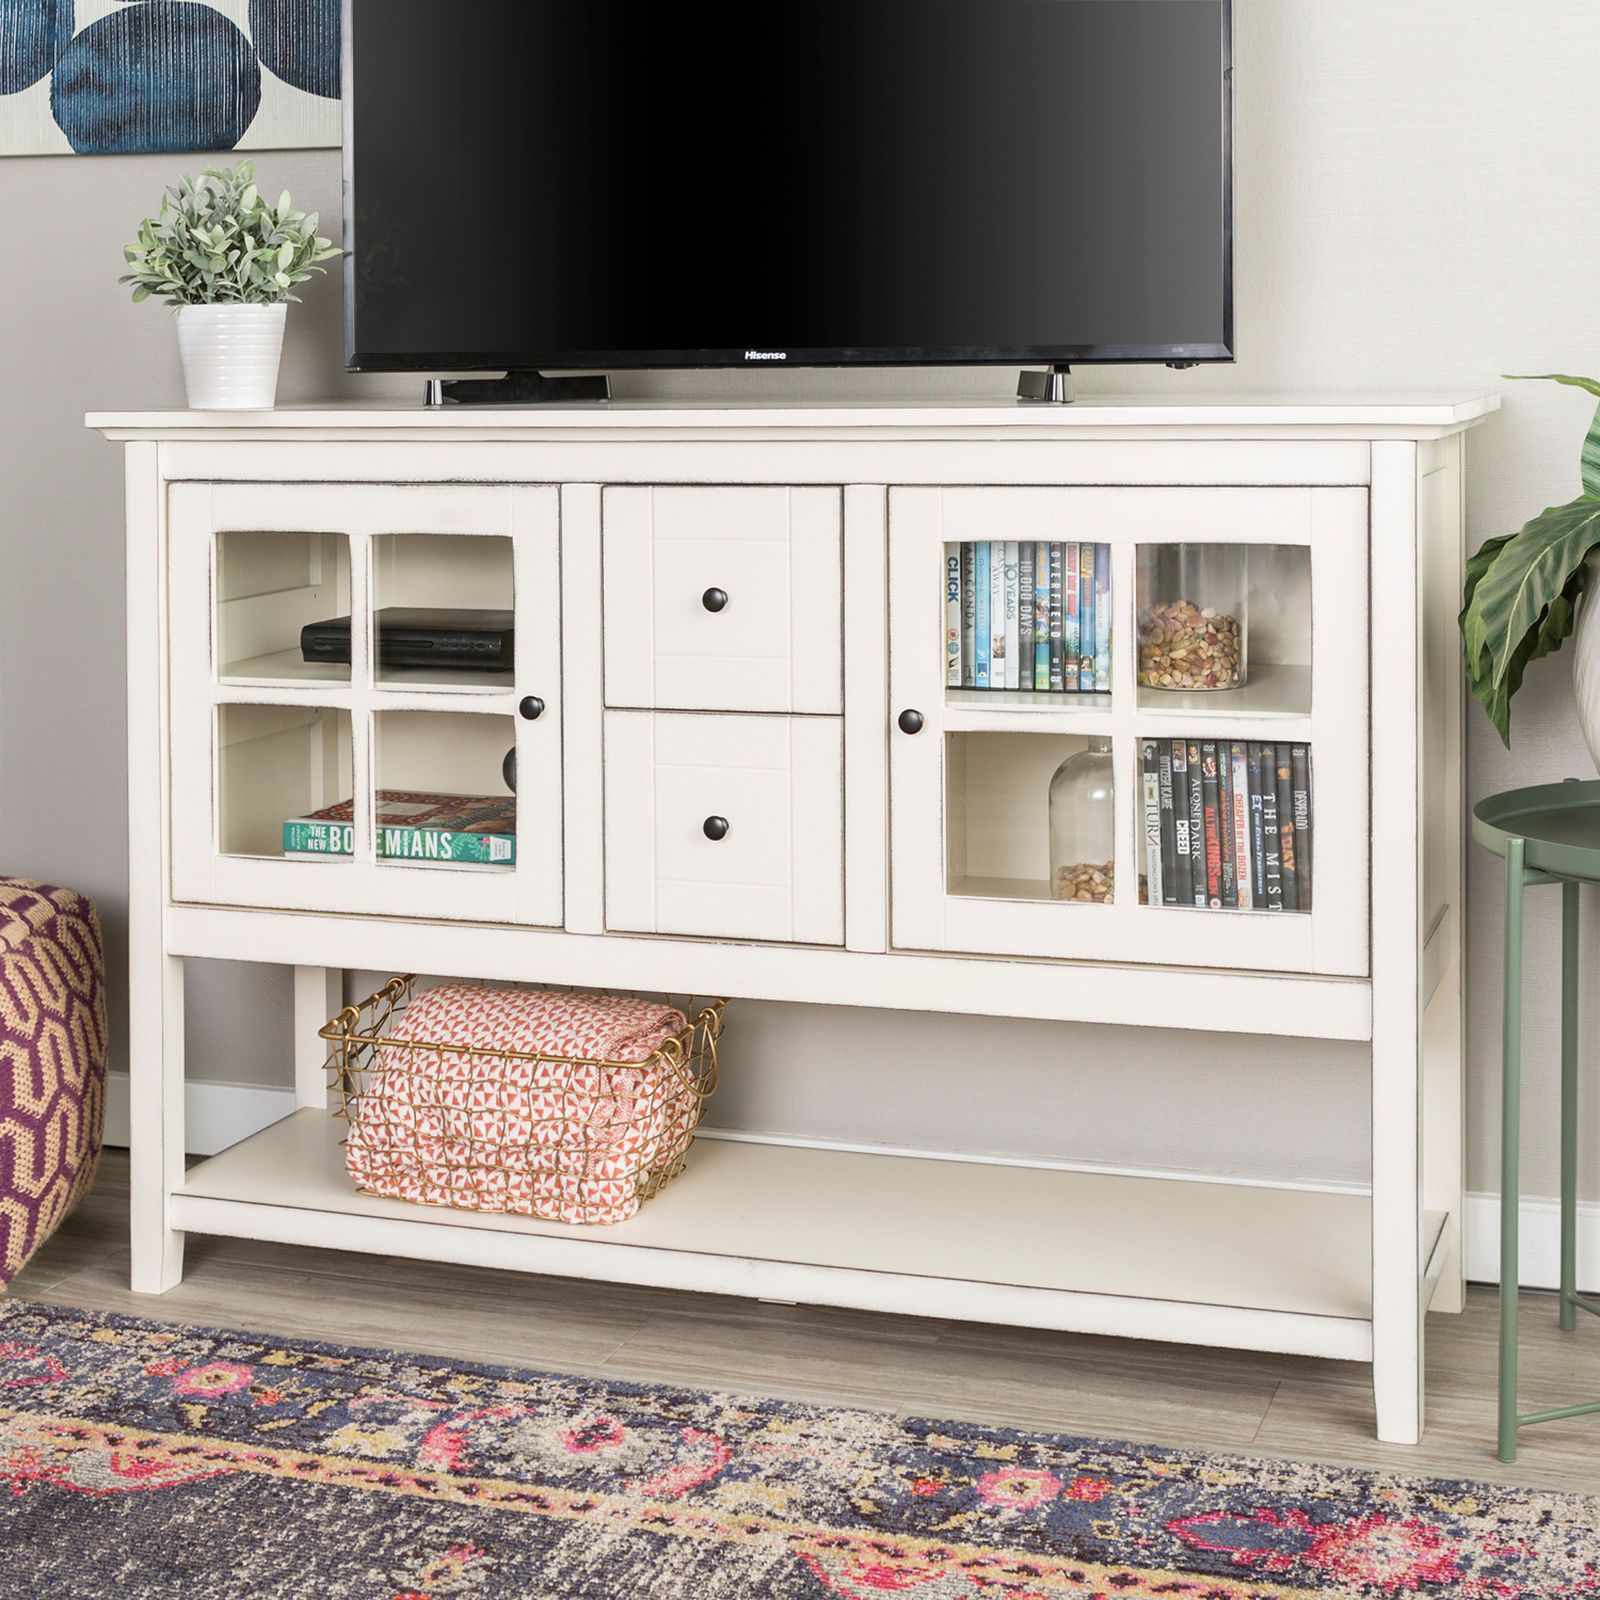 52 Wood Tv Stand Media Storage In Antique White Pier 1 Saracina Home White Tv Stands Console Table